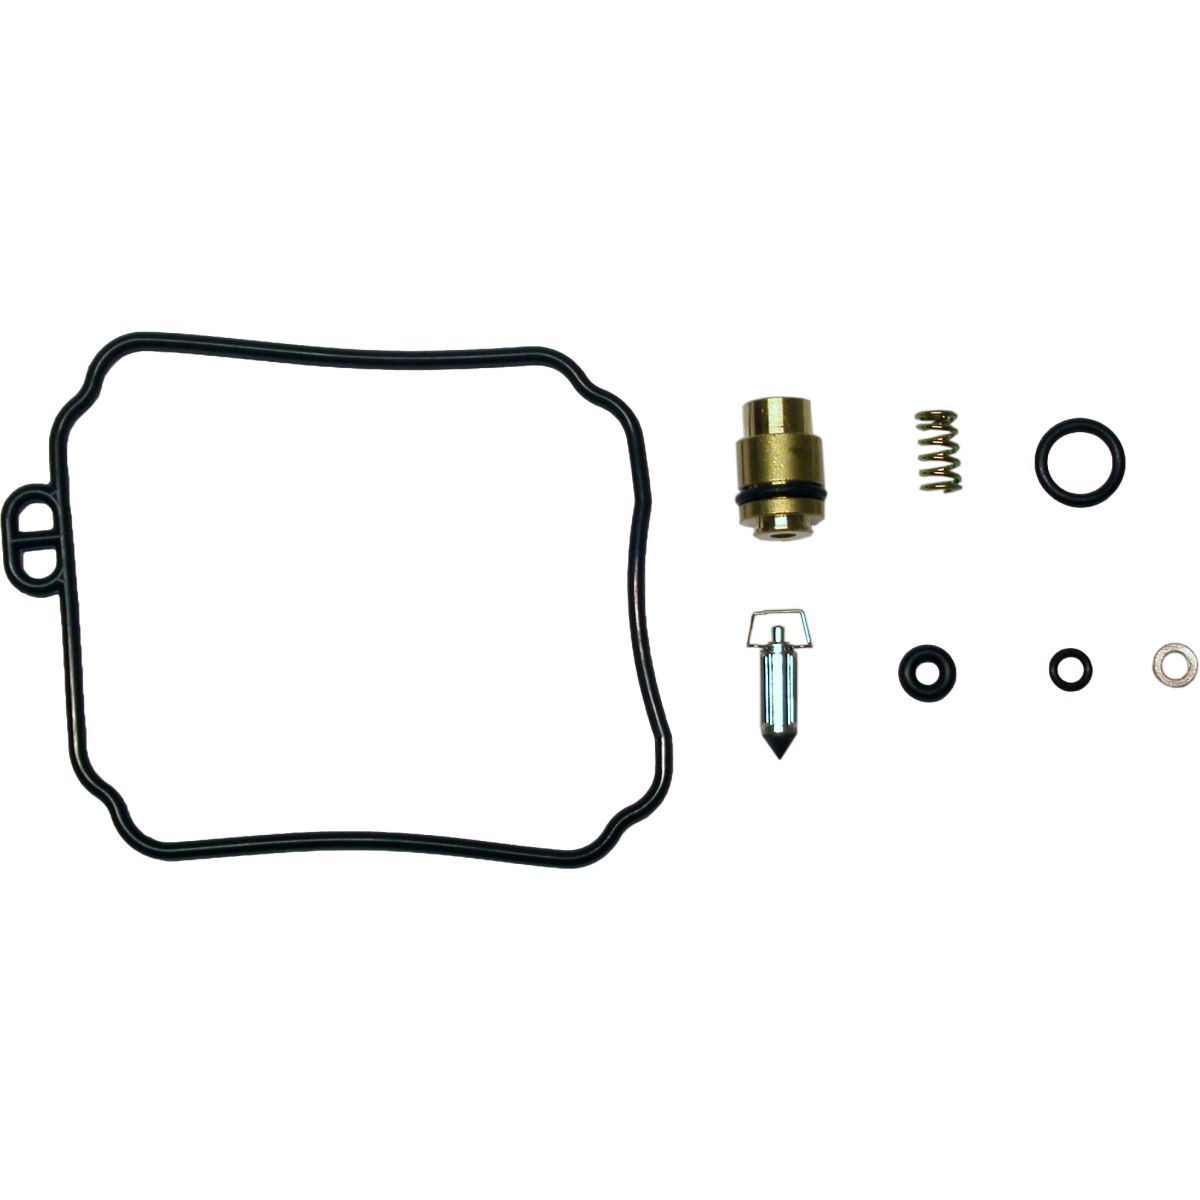 AW Motorcycle Parts. Carburettor Repair Kit Yamaha XVS650